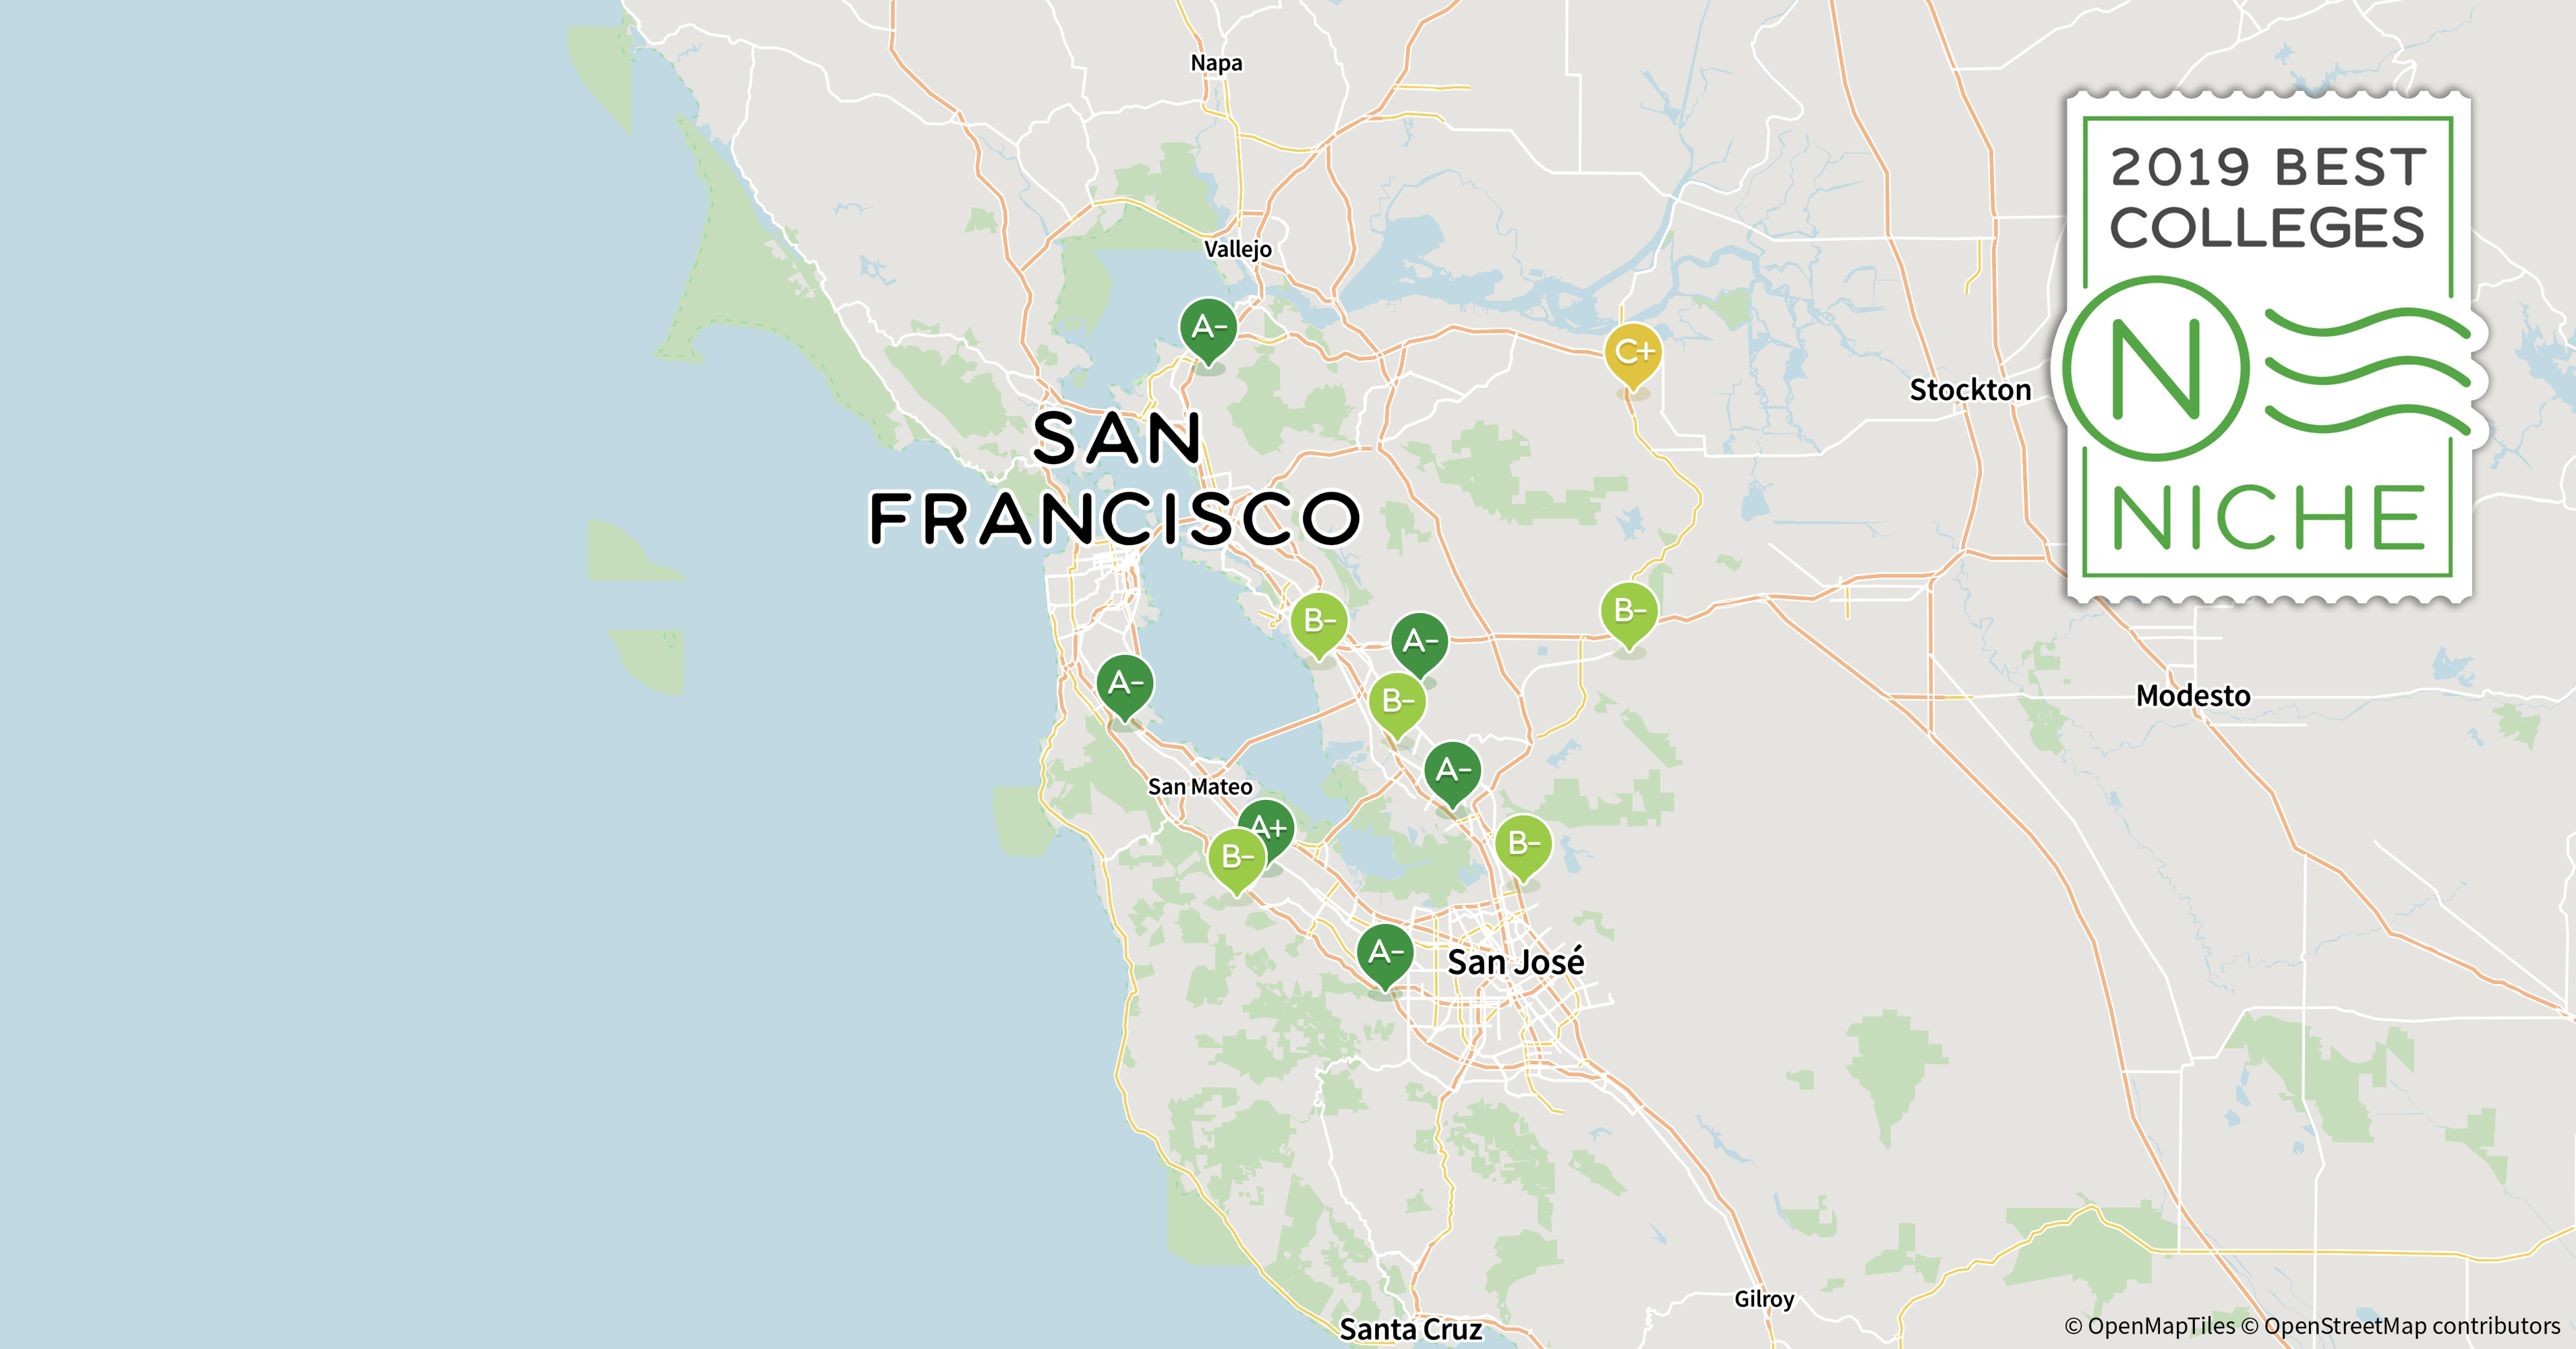 2019 best colleges in san francisco bay area